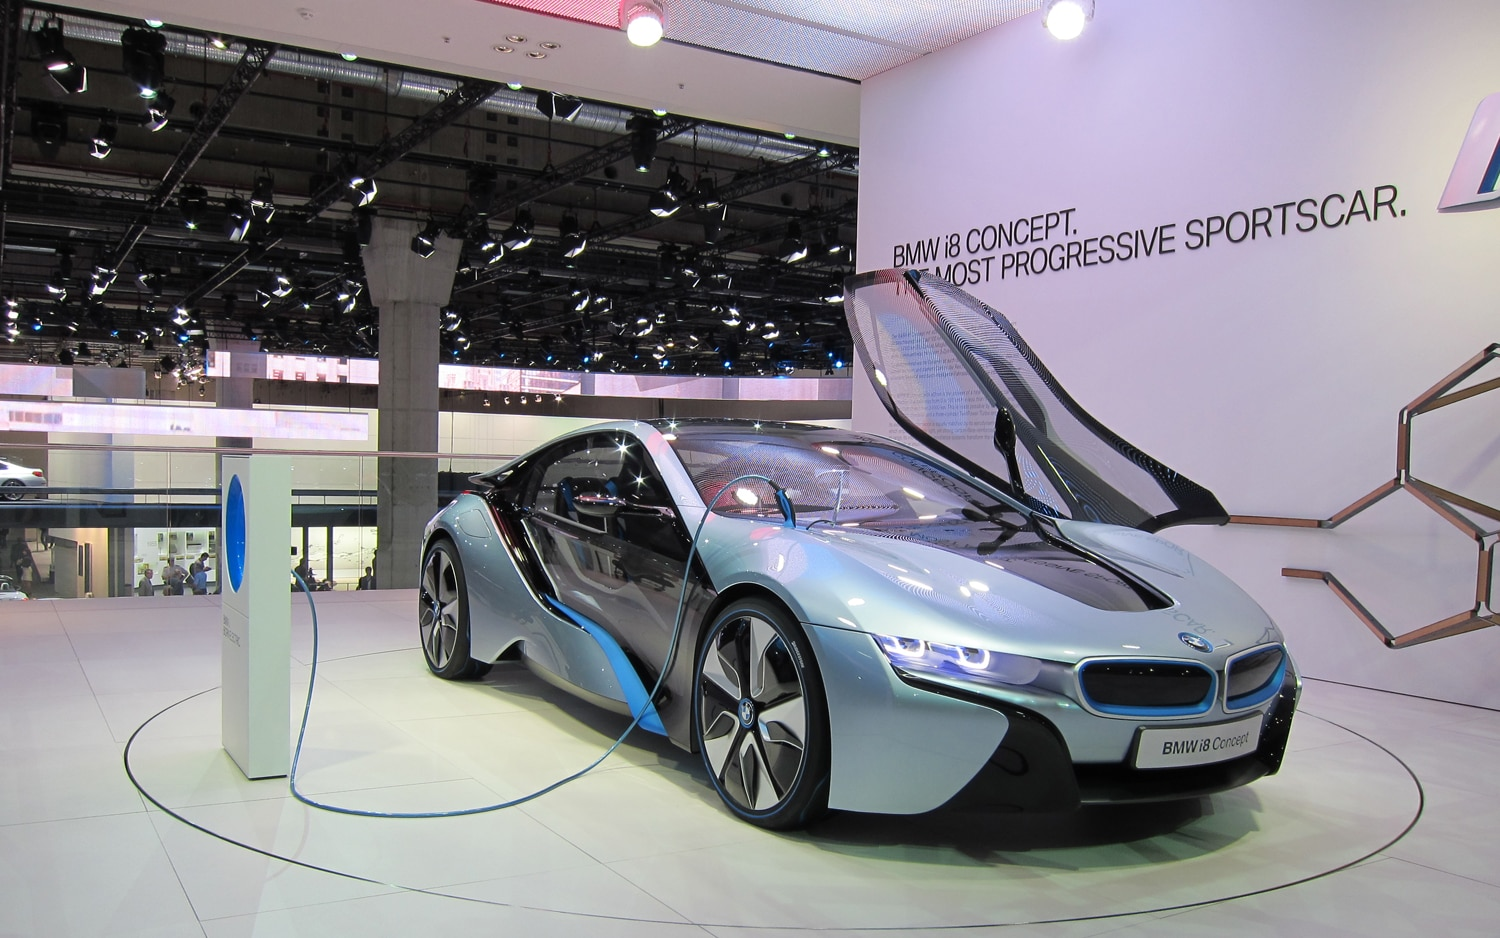 BMW I8 Concept Front Right View 2